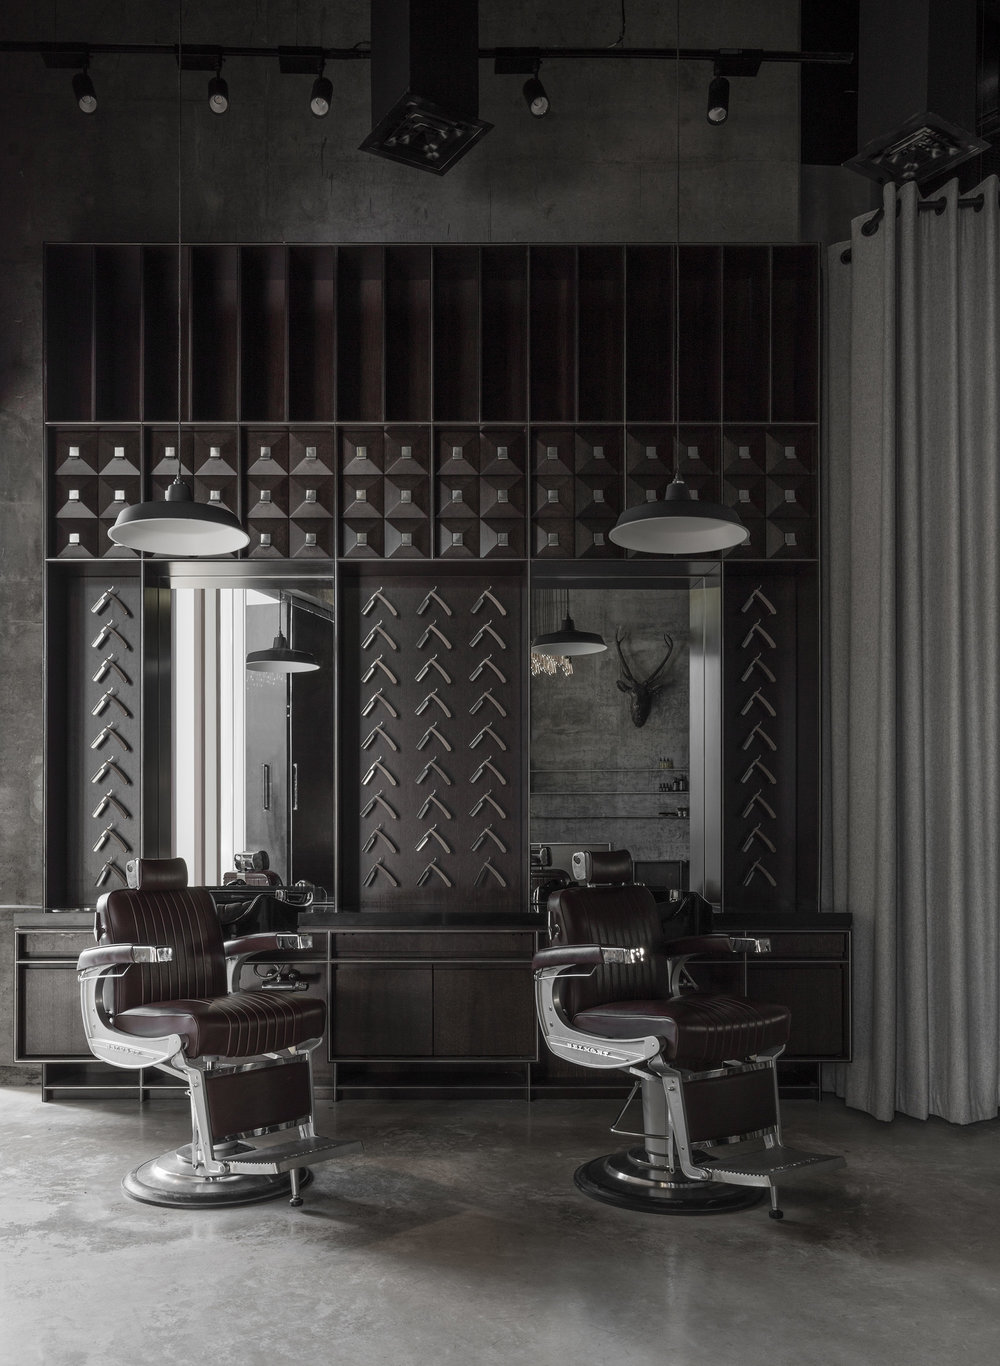 Chaps & Co-Marina-Dubai-Barbershop-Concrete-Oak-Belmont-Vintage-Chair-Interior-Architect.jpg